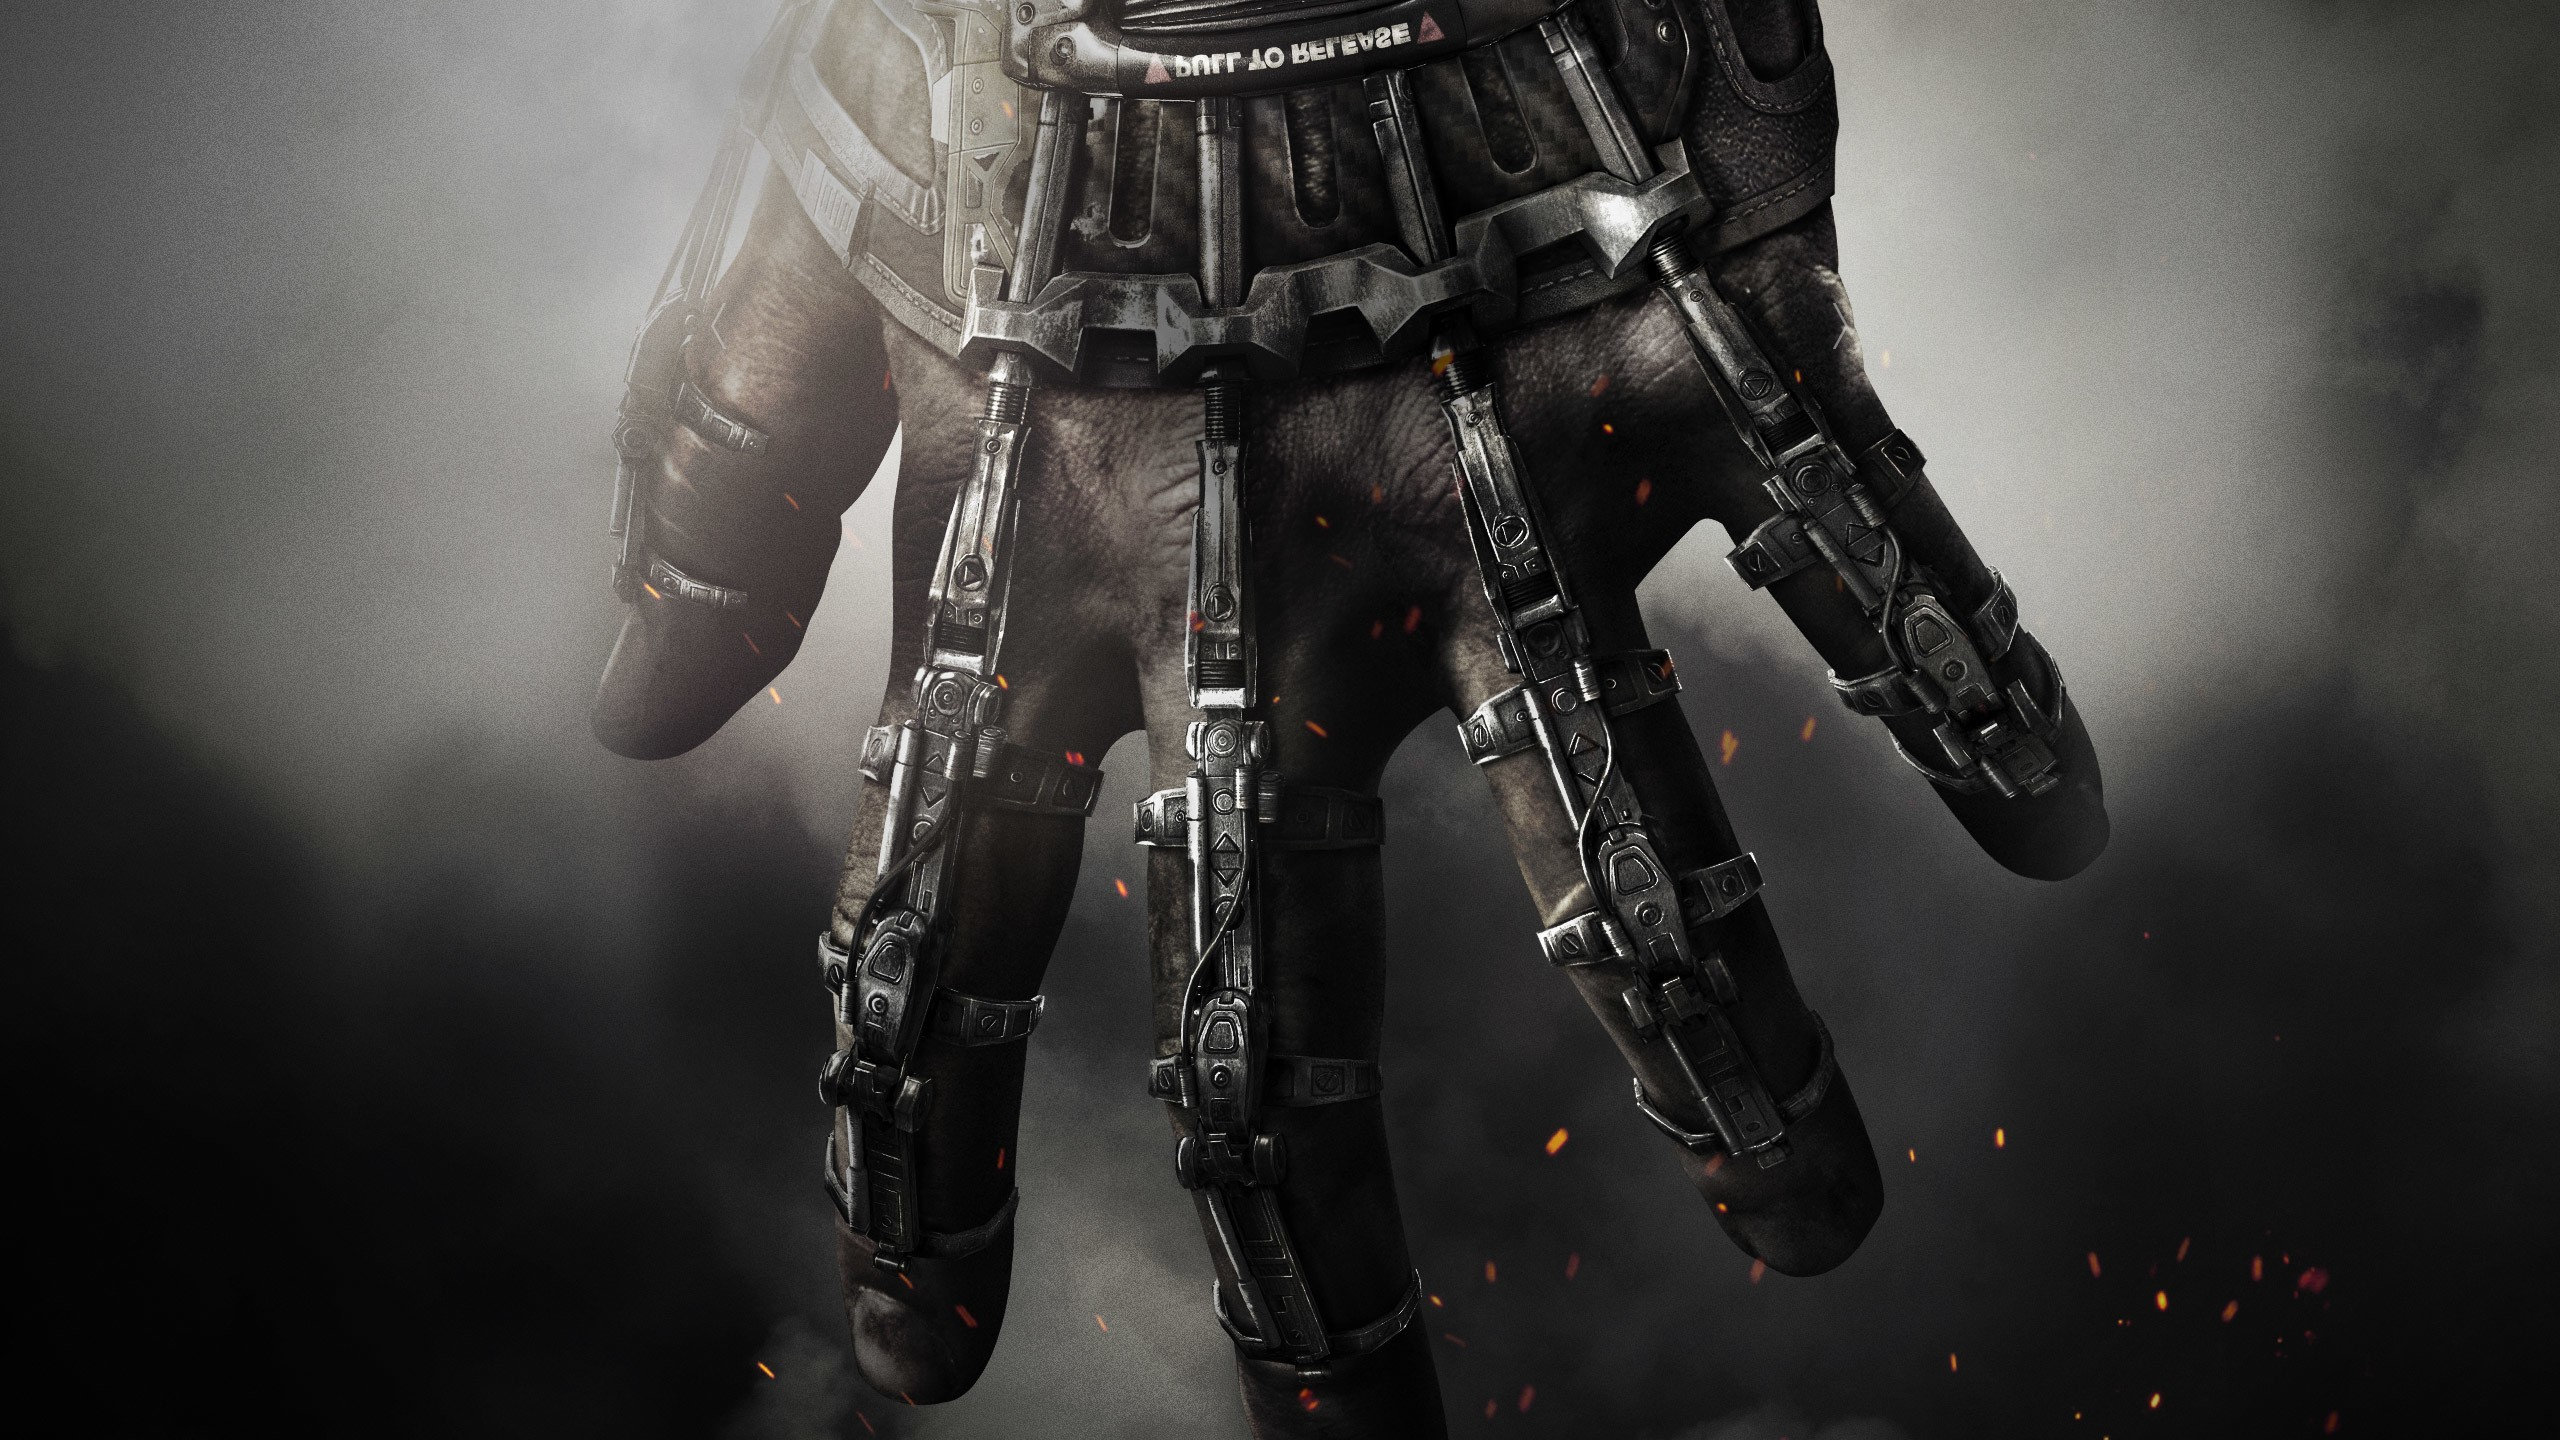 call of duty advanced warfare 3 hd games 4k wallpapers